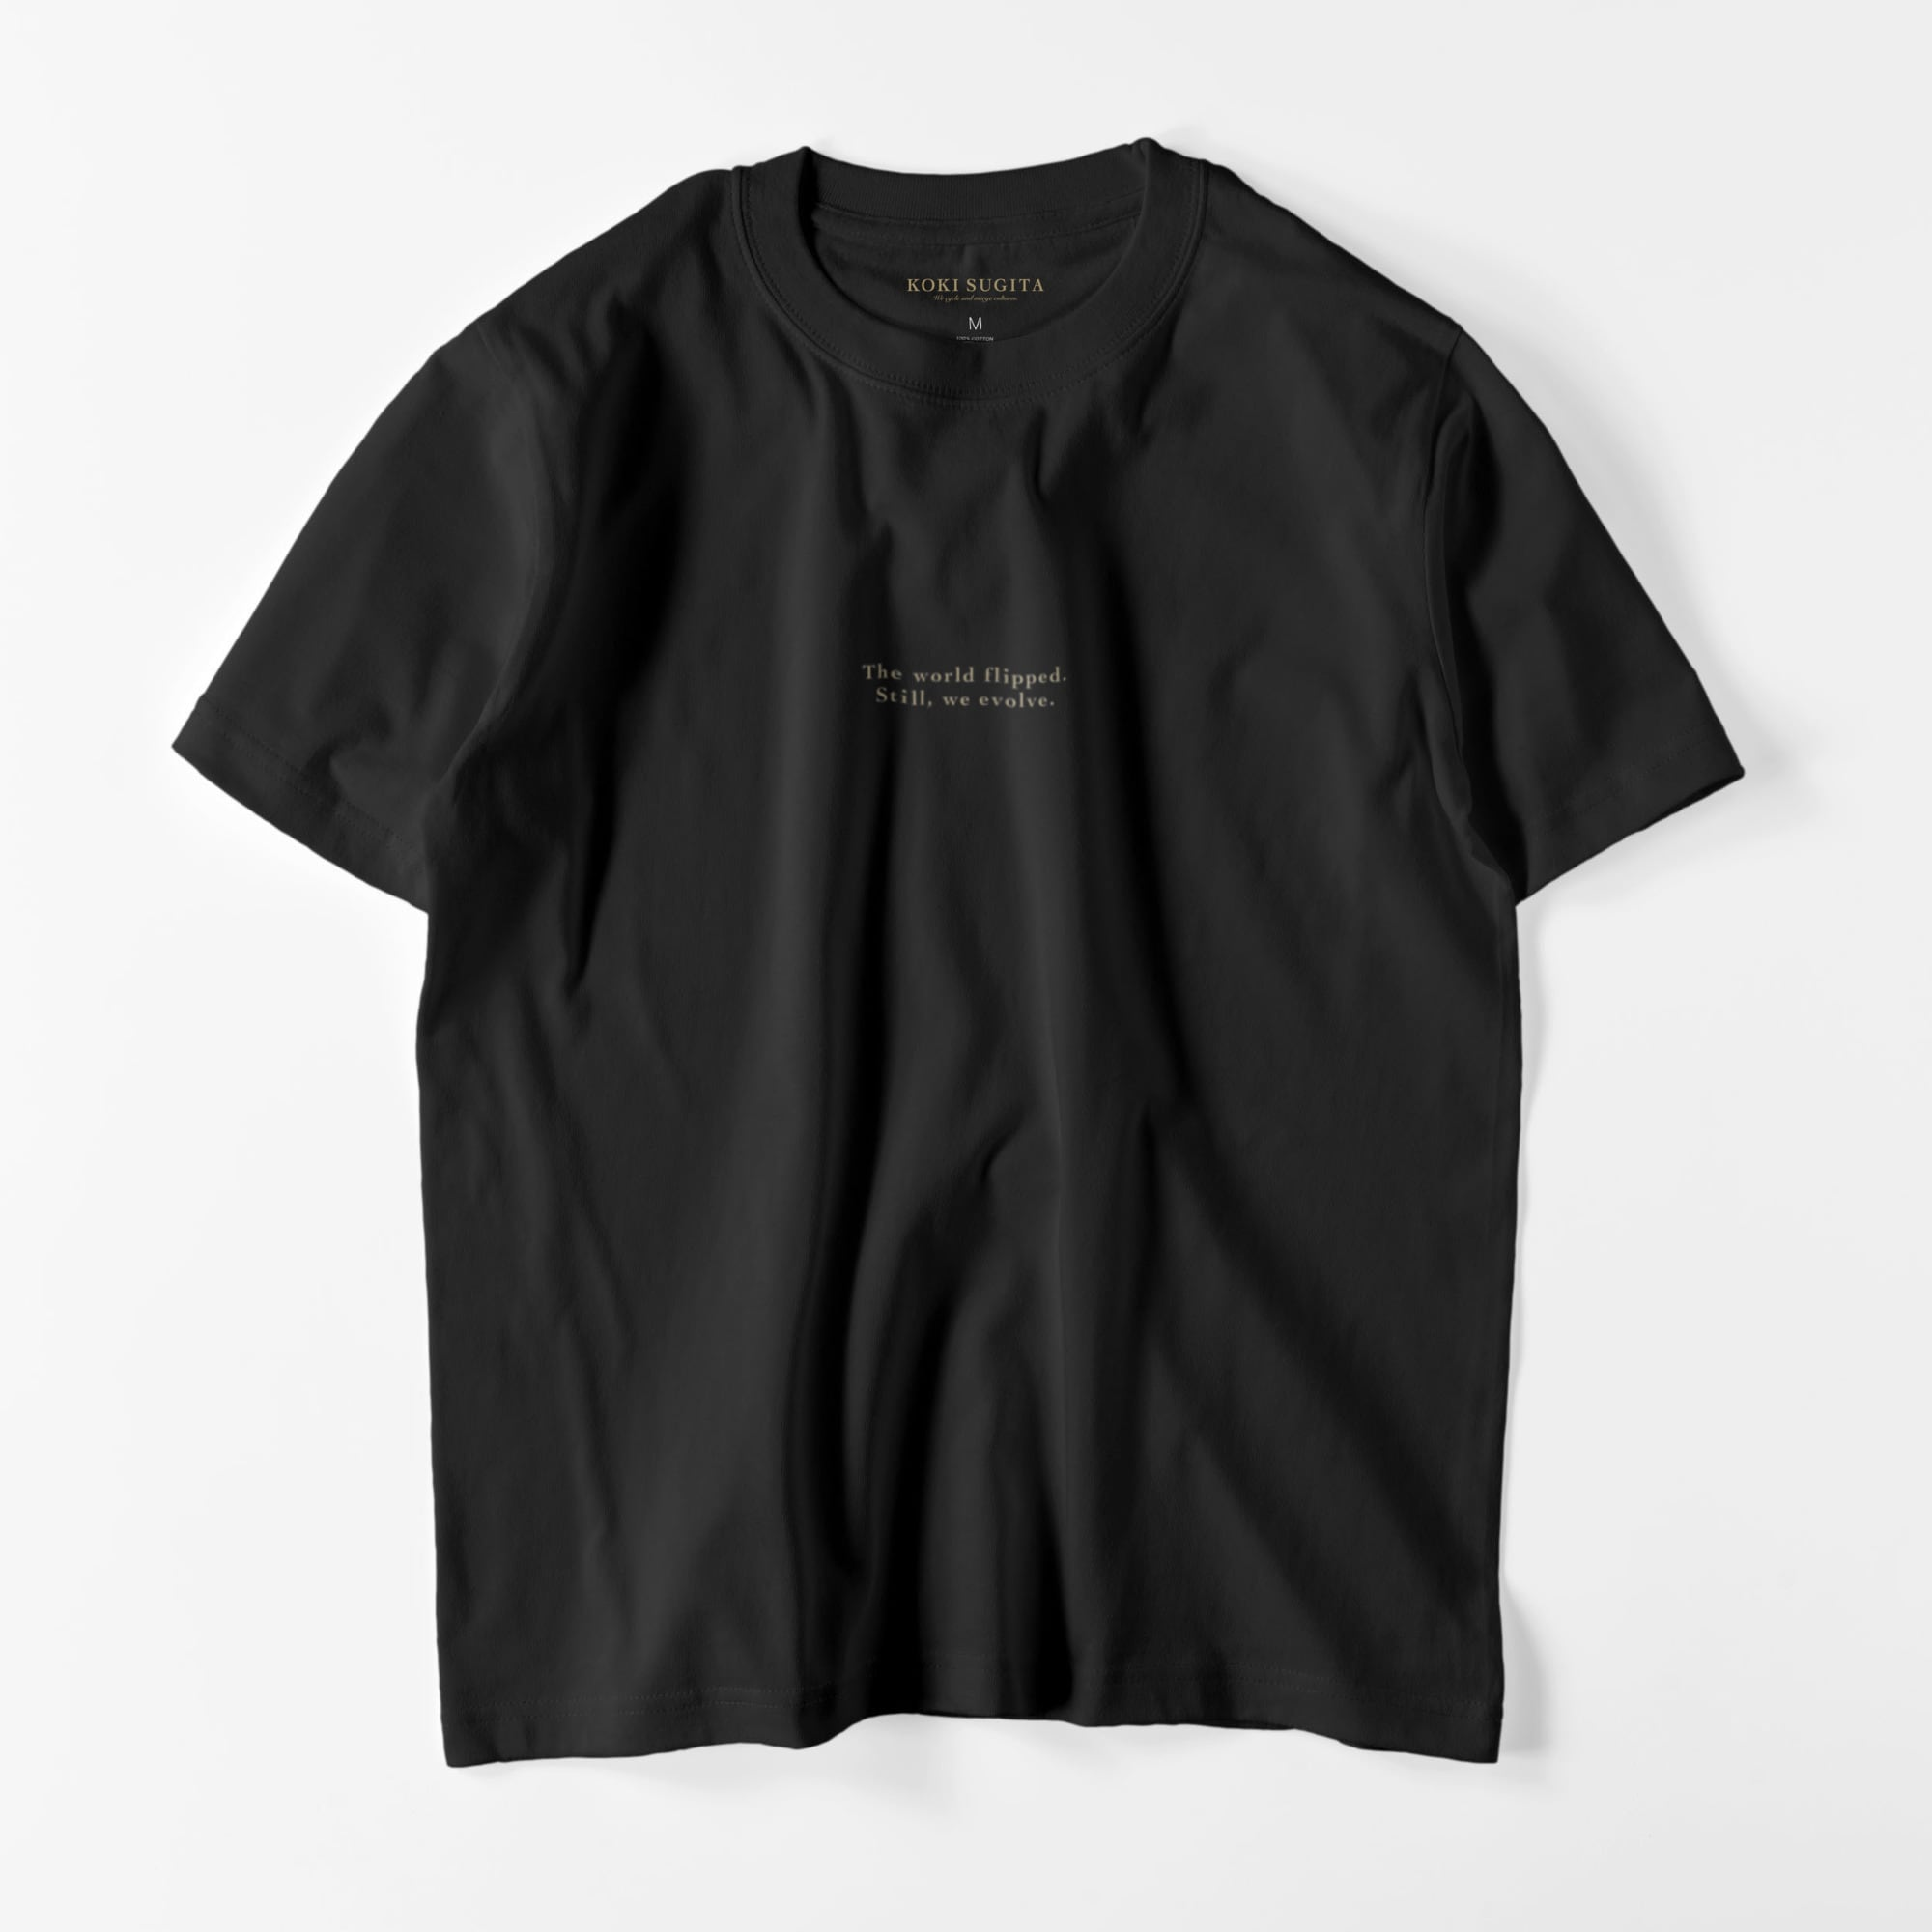 The world flipped. GRAPHIC - T SHIRTS